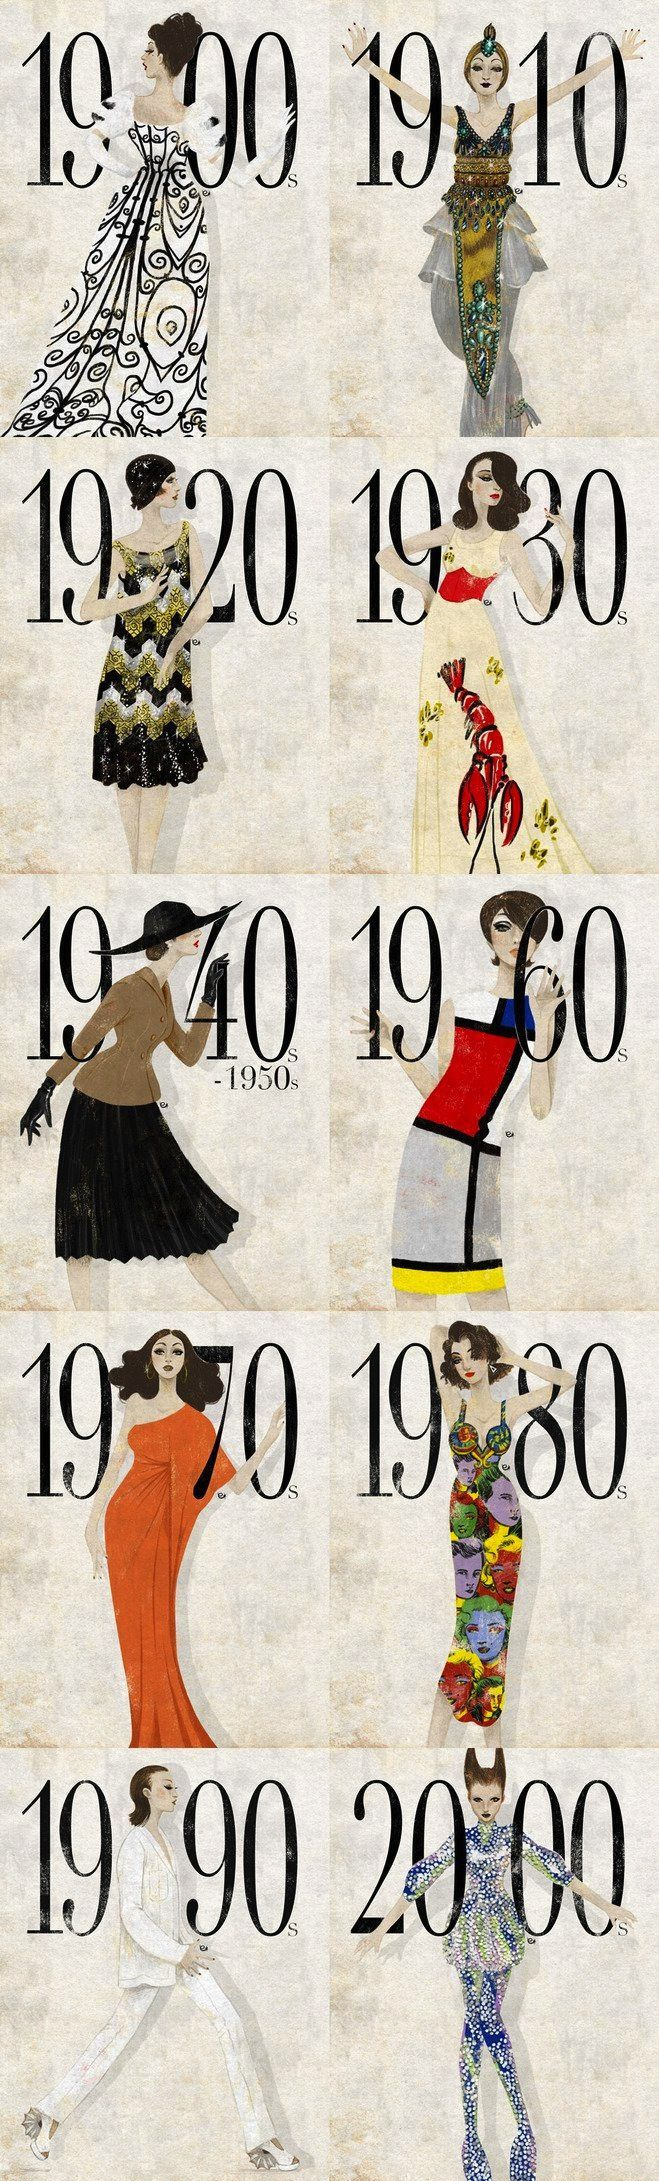 Fashion history though i think that the was incorrectly